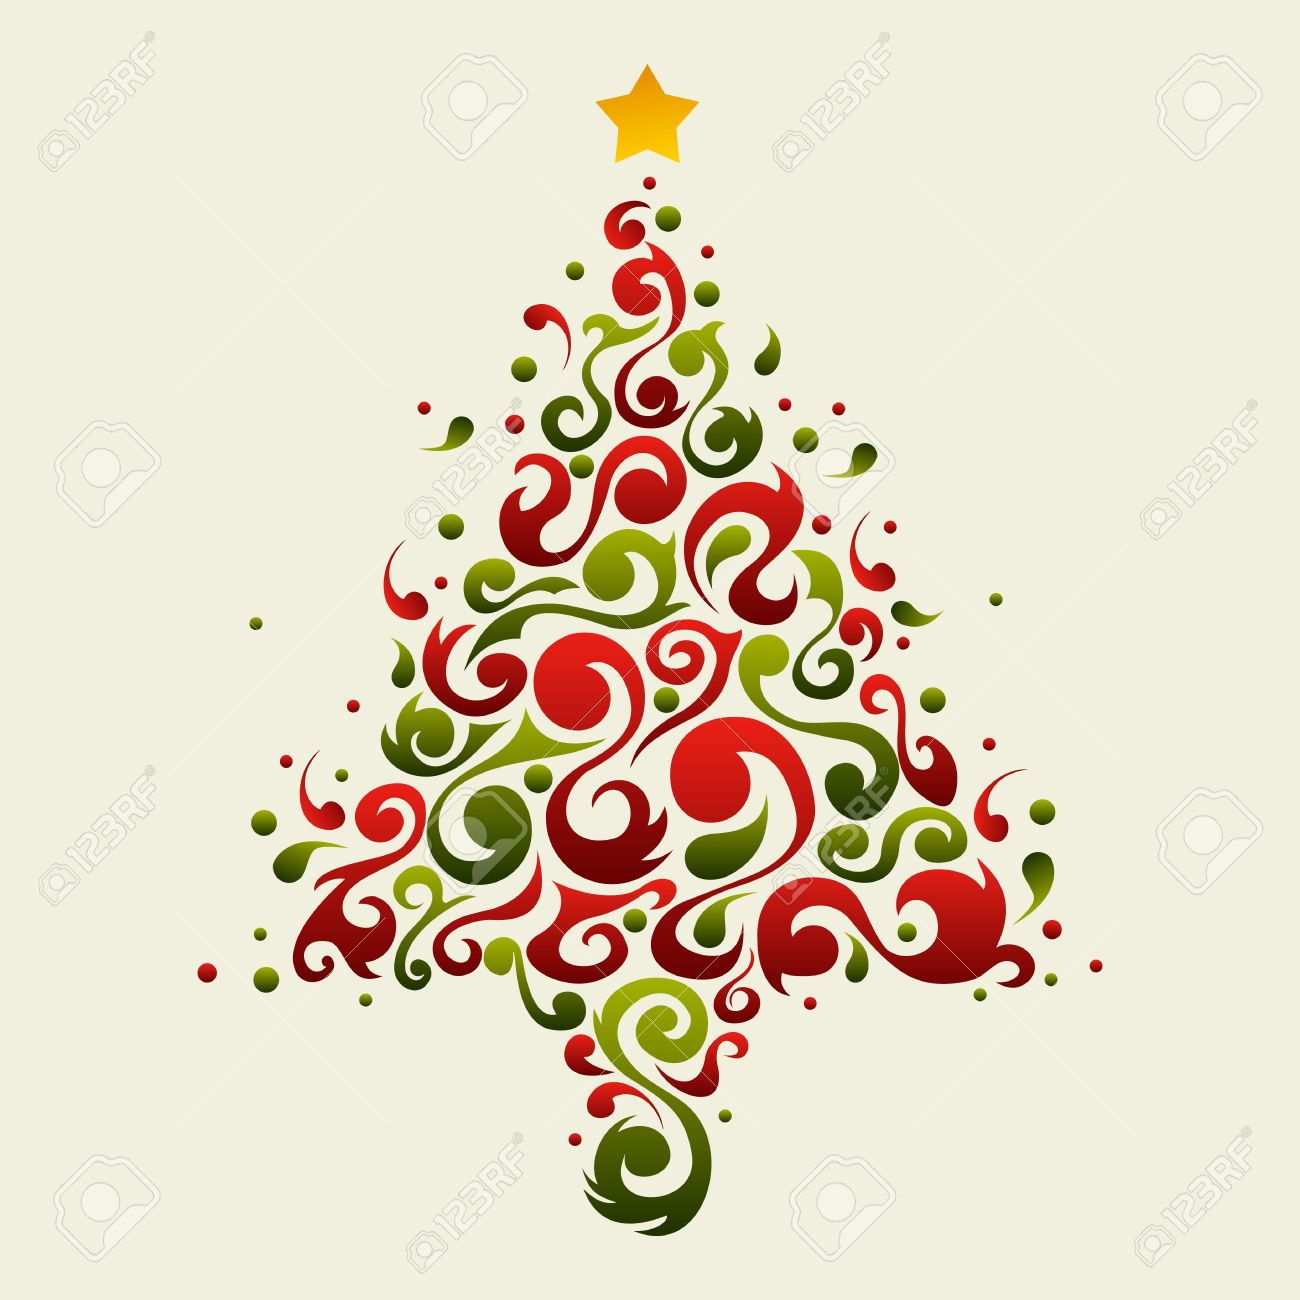 Christmas Tree Made With Green And Red Floral Ornamental Shapes Royalty Free Cliparts Vectors And Stock Illustration Image 10801139